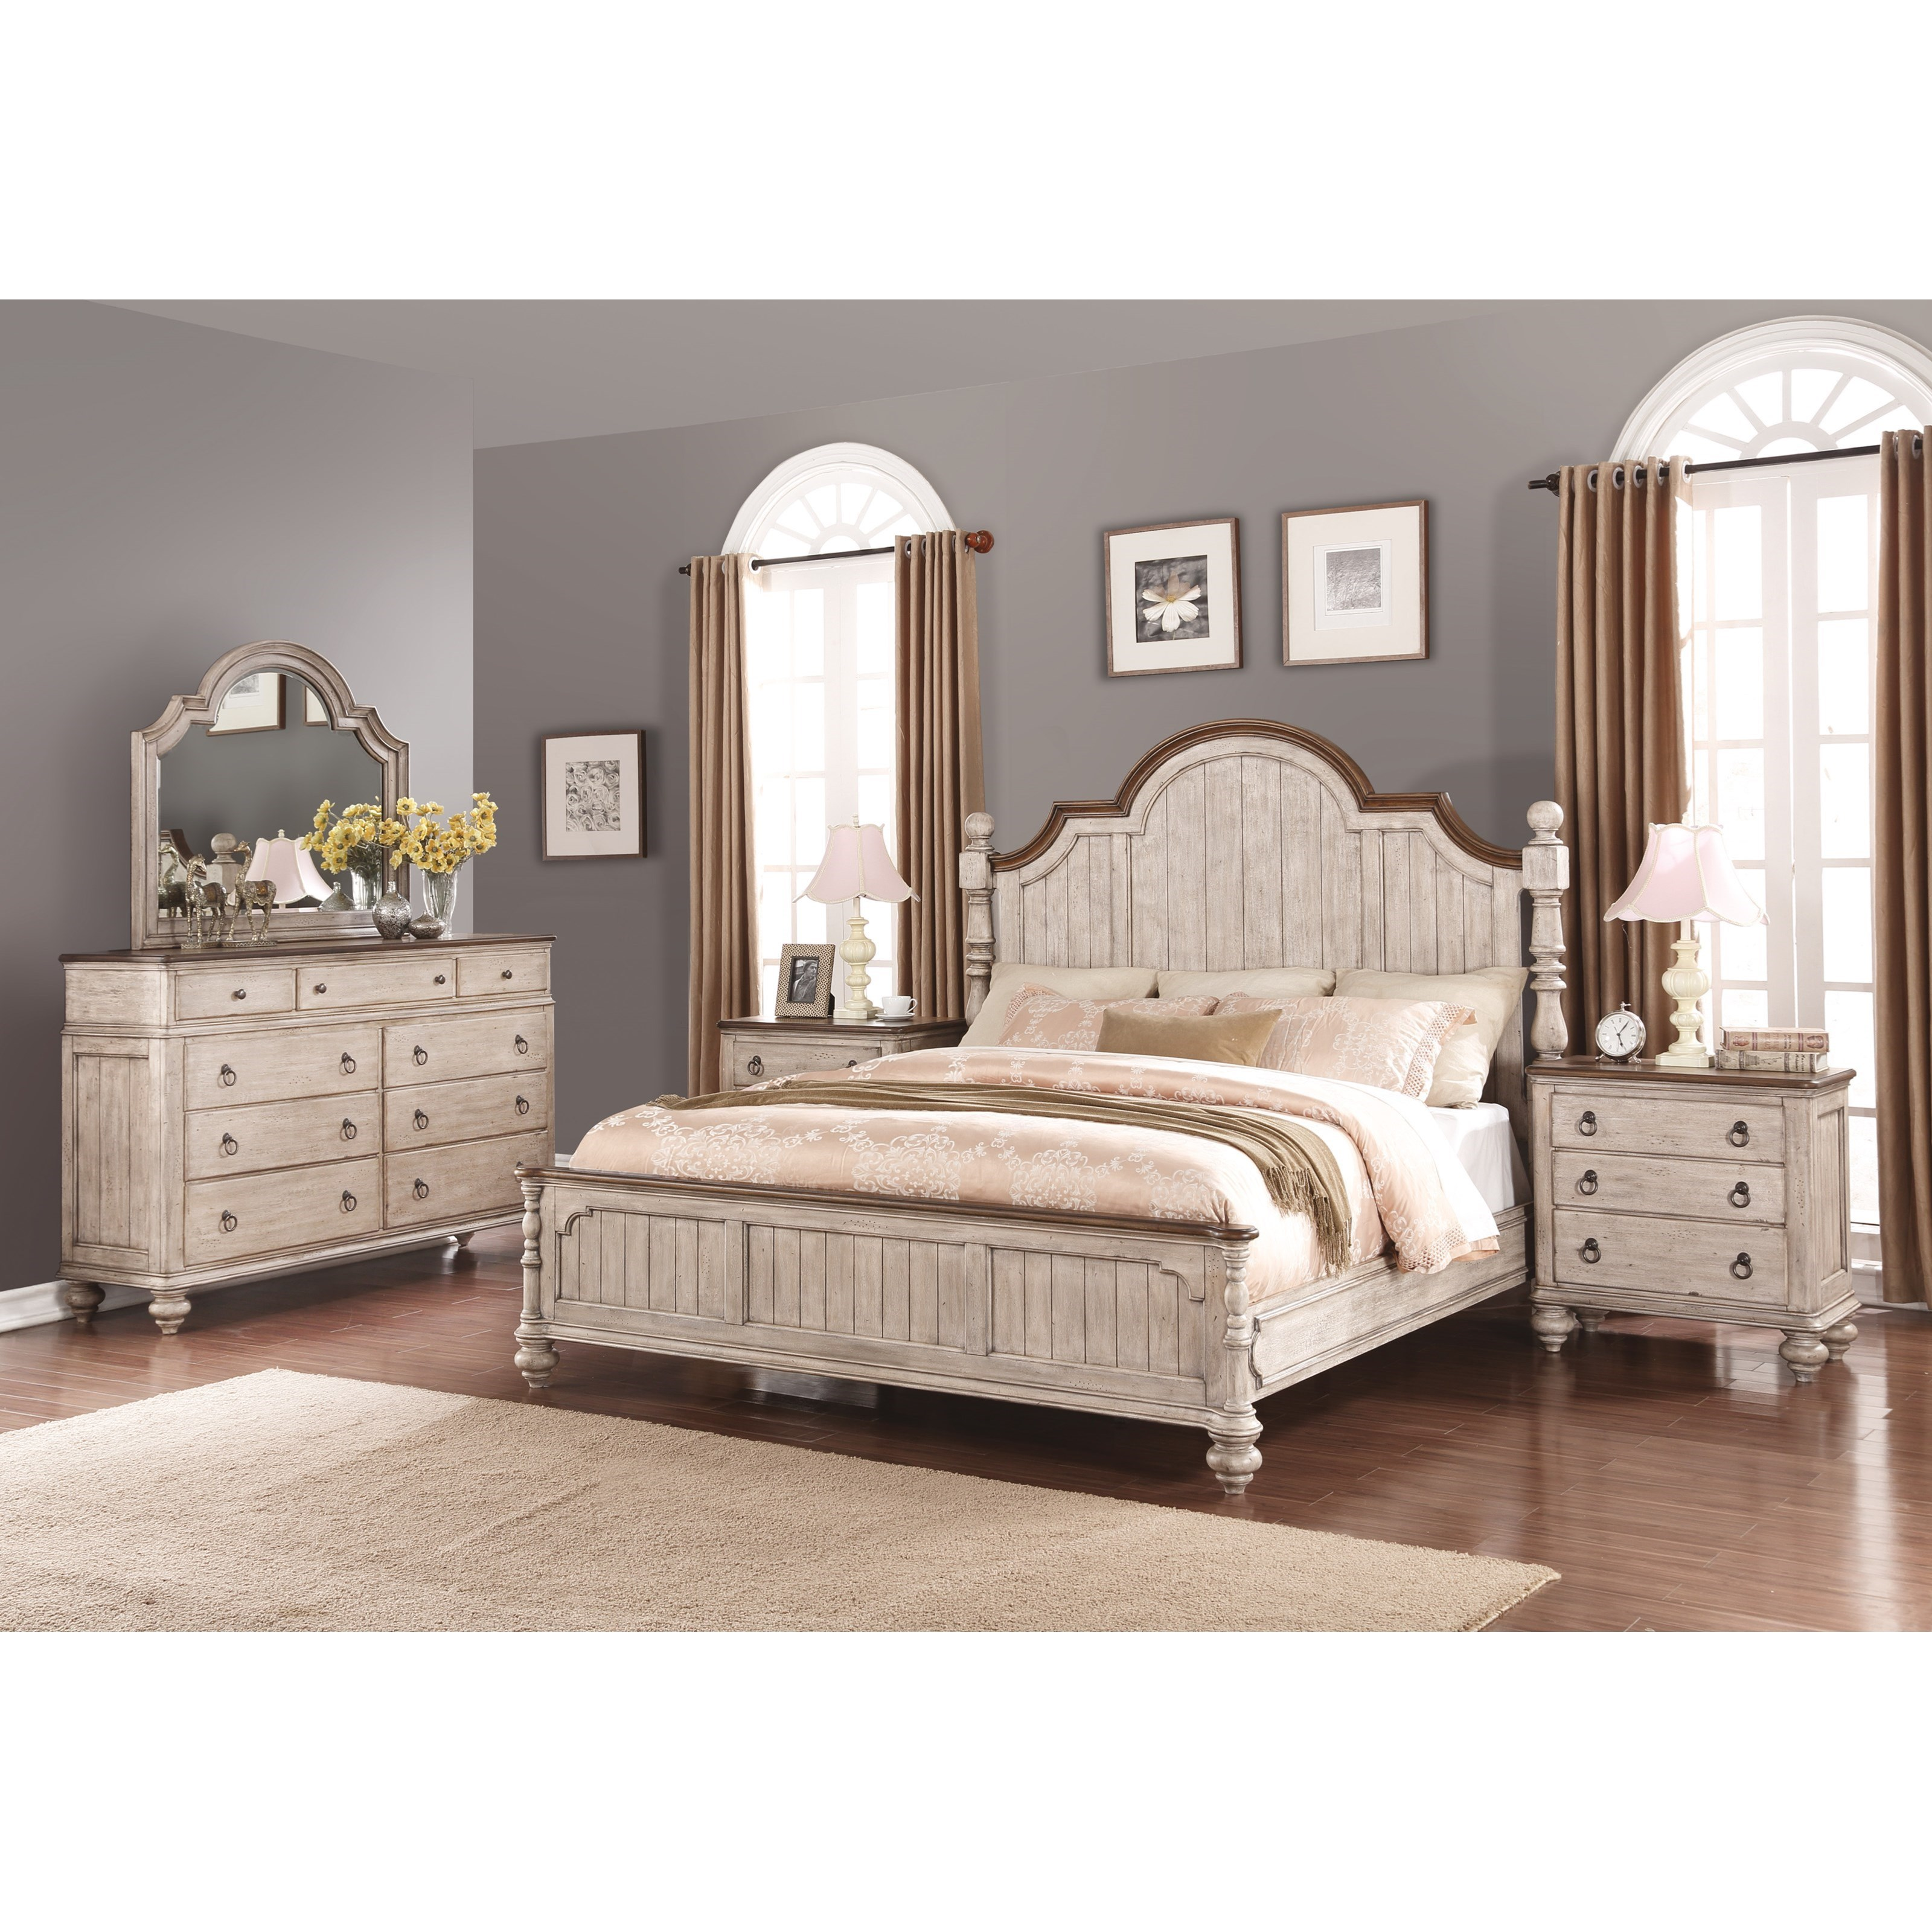 Plymouth King Bedroom Group by Flexsteel Wynwood Collection at Northeast Factory Direct